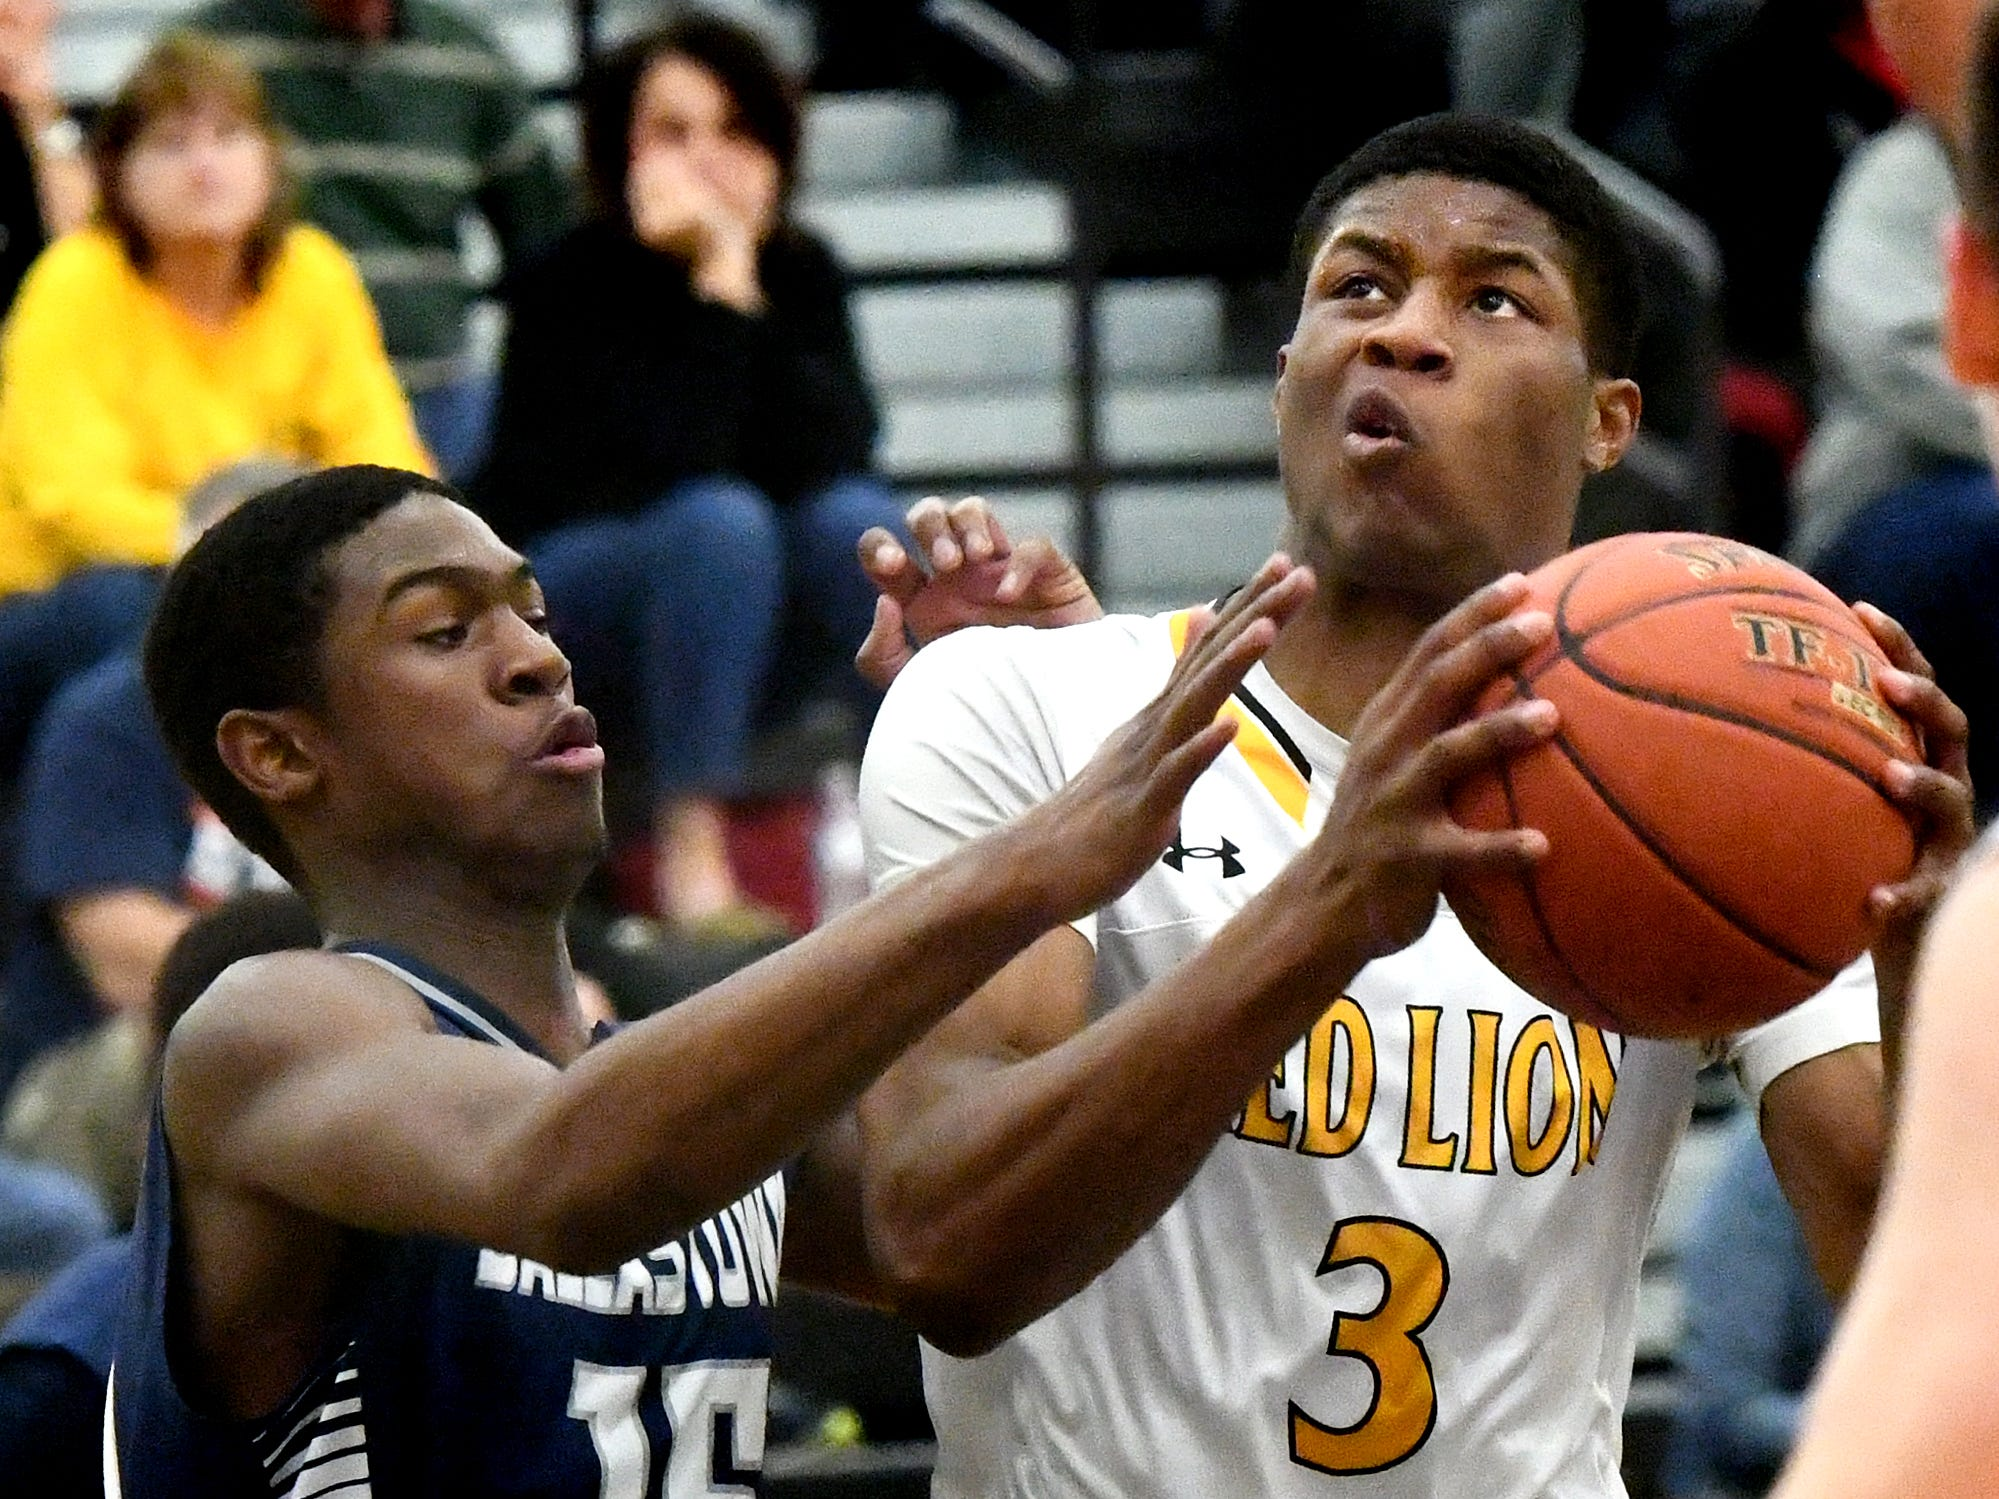 Red Lion's Davante Dennis drives against Dallastown's Jadon Green during basketball action at Red Lion Tuesday, Feb. 5, 2019. Bill Kalina photo